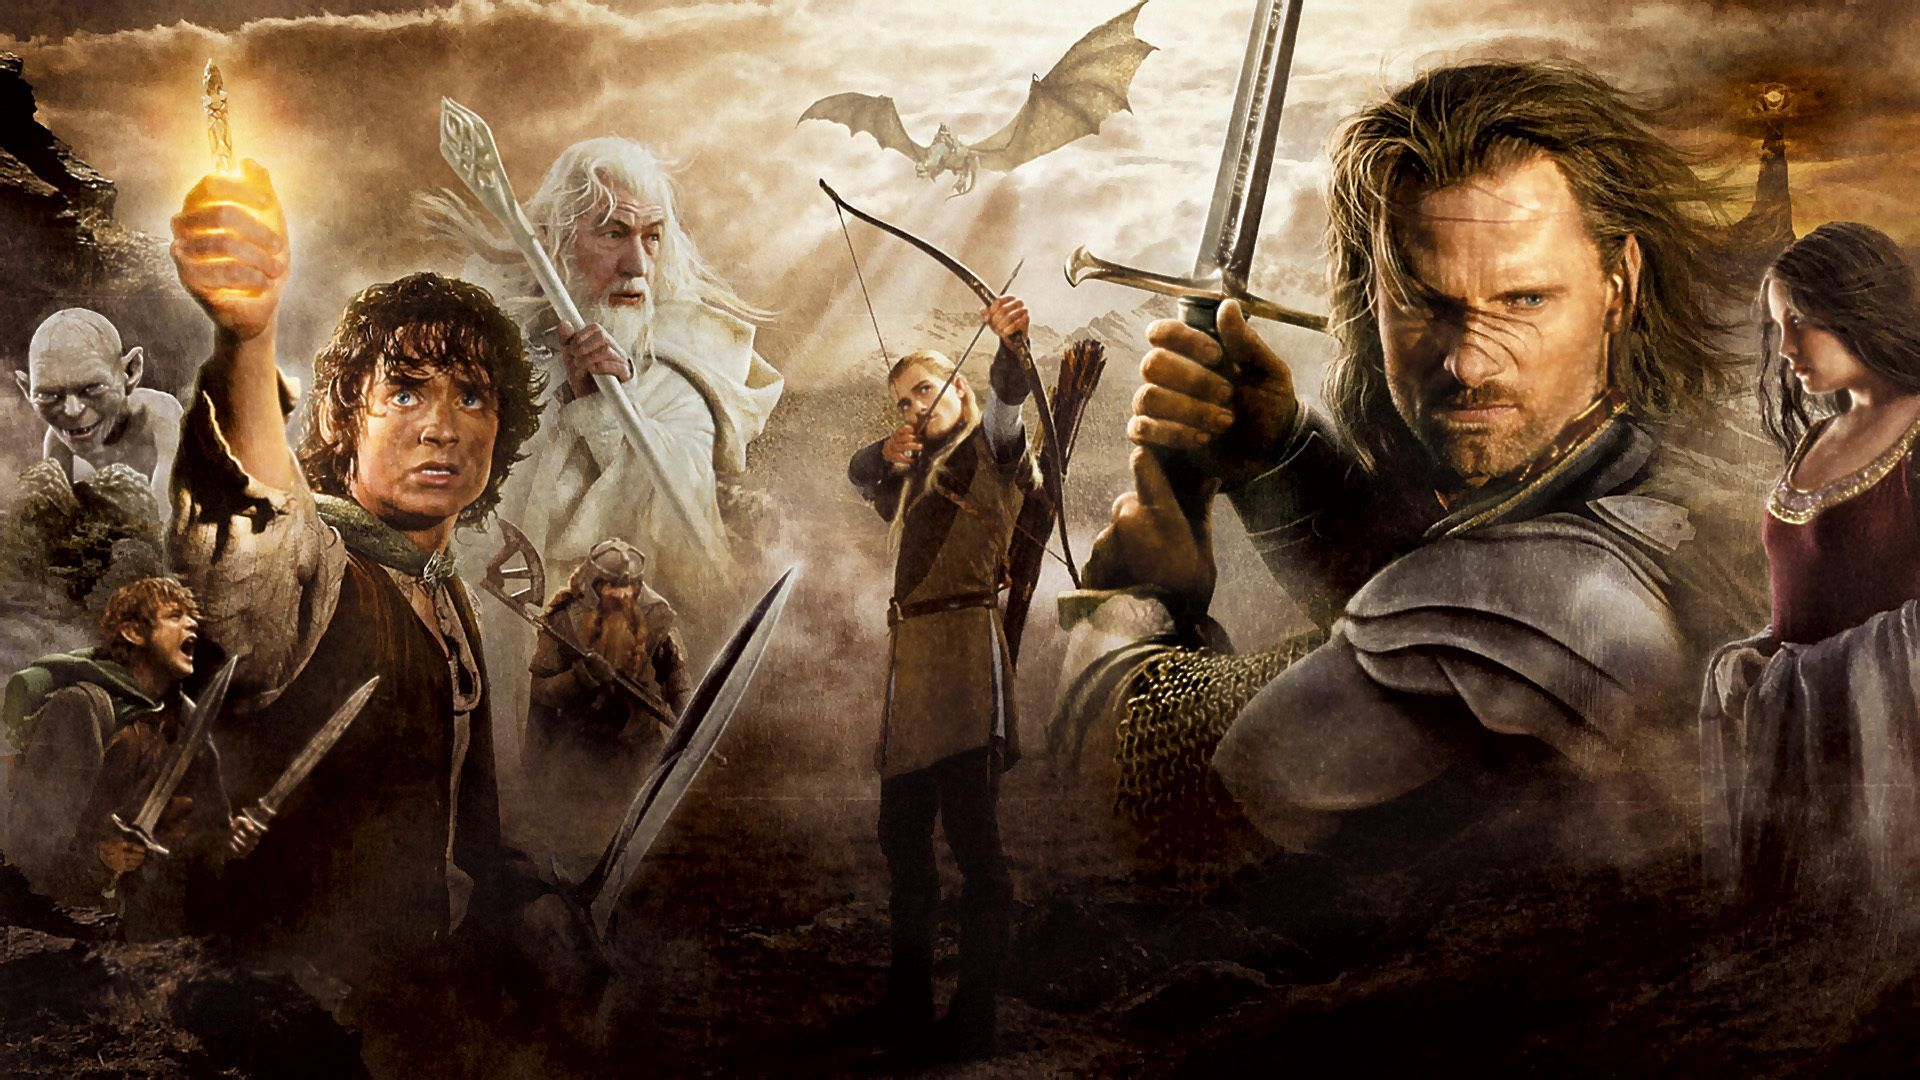 Lord of the Rings wallpaper #17275